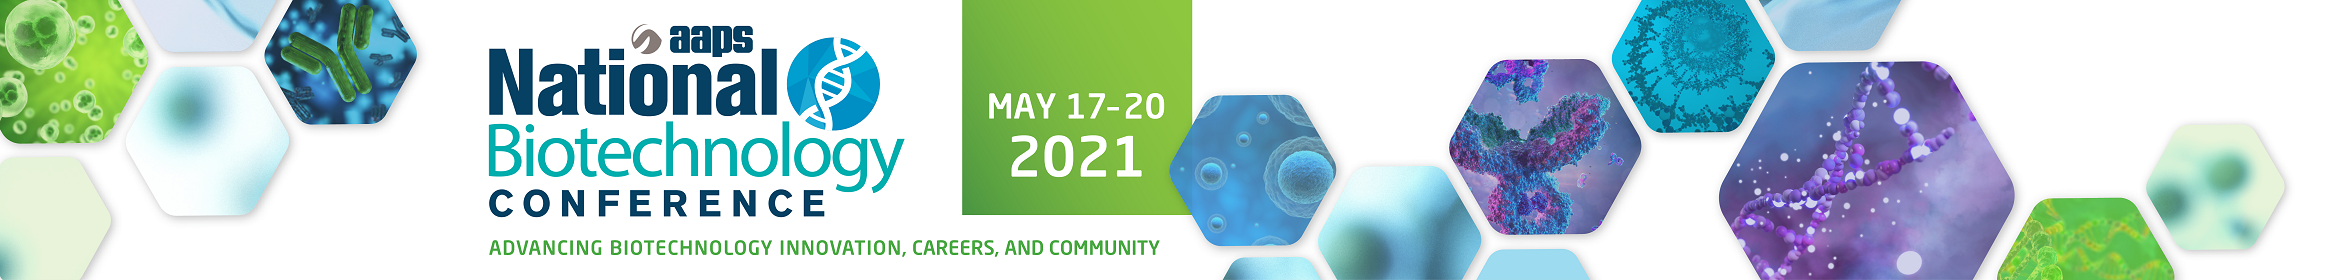 2021 National Biotechnology Conference Main banner